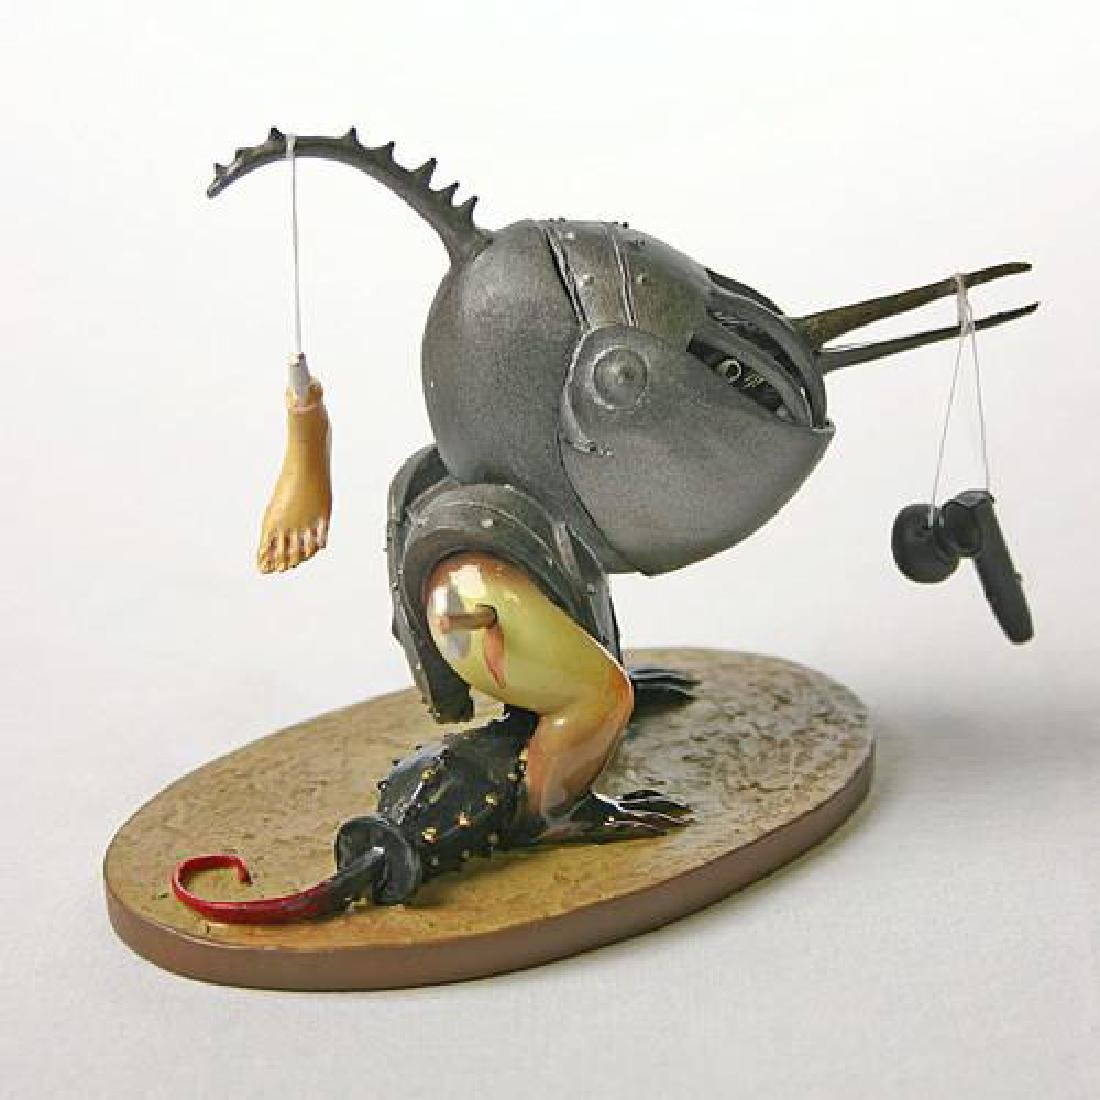 After Jheronimus Bosch: Helmeted Bird Monster statue - 2